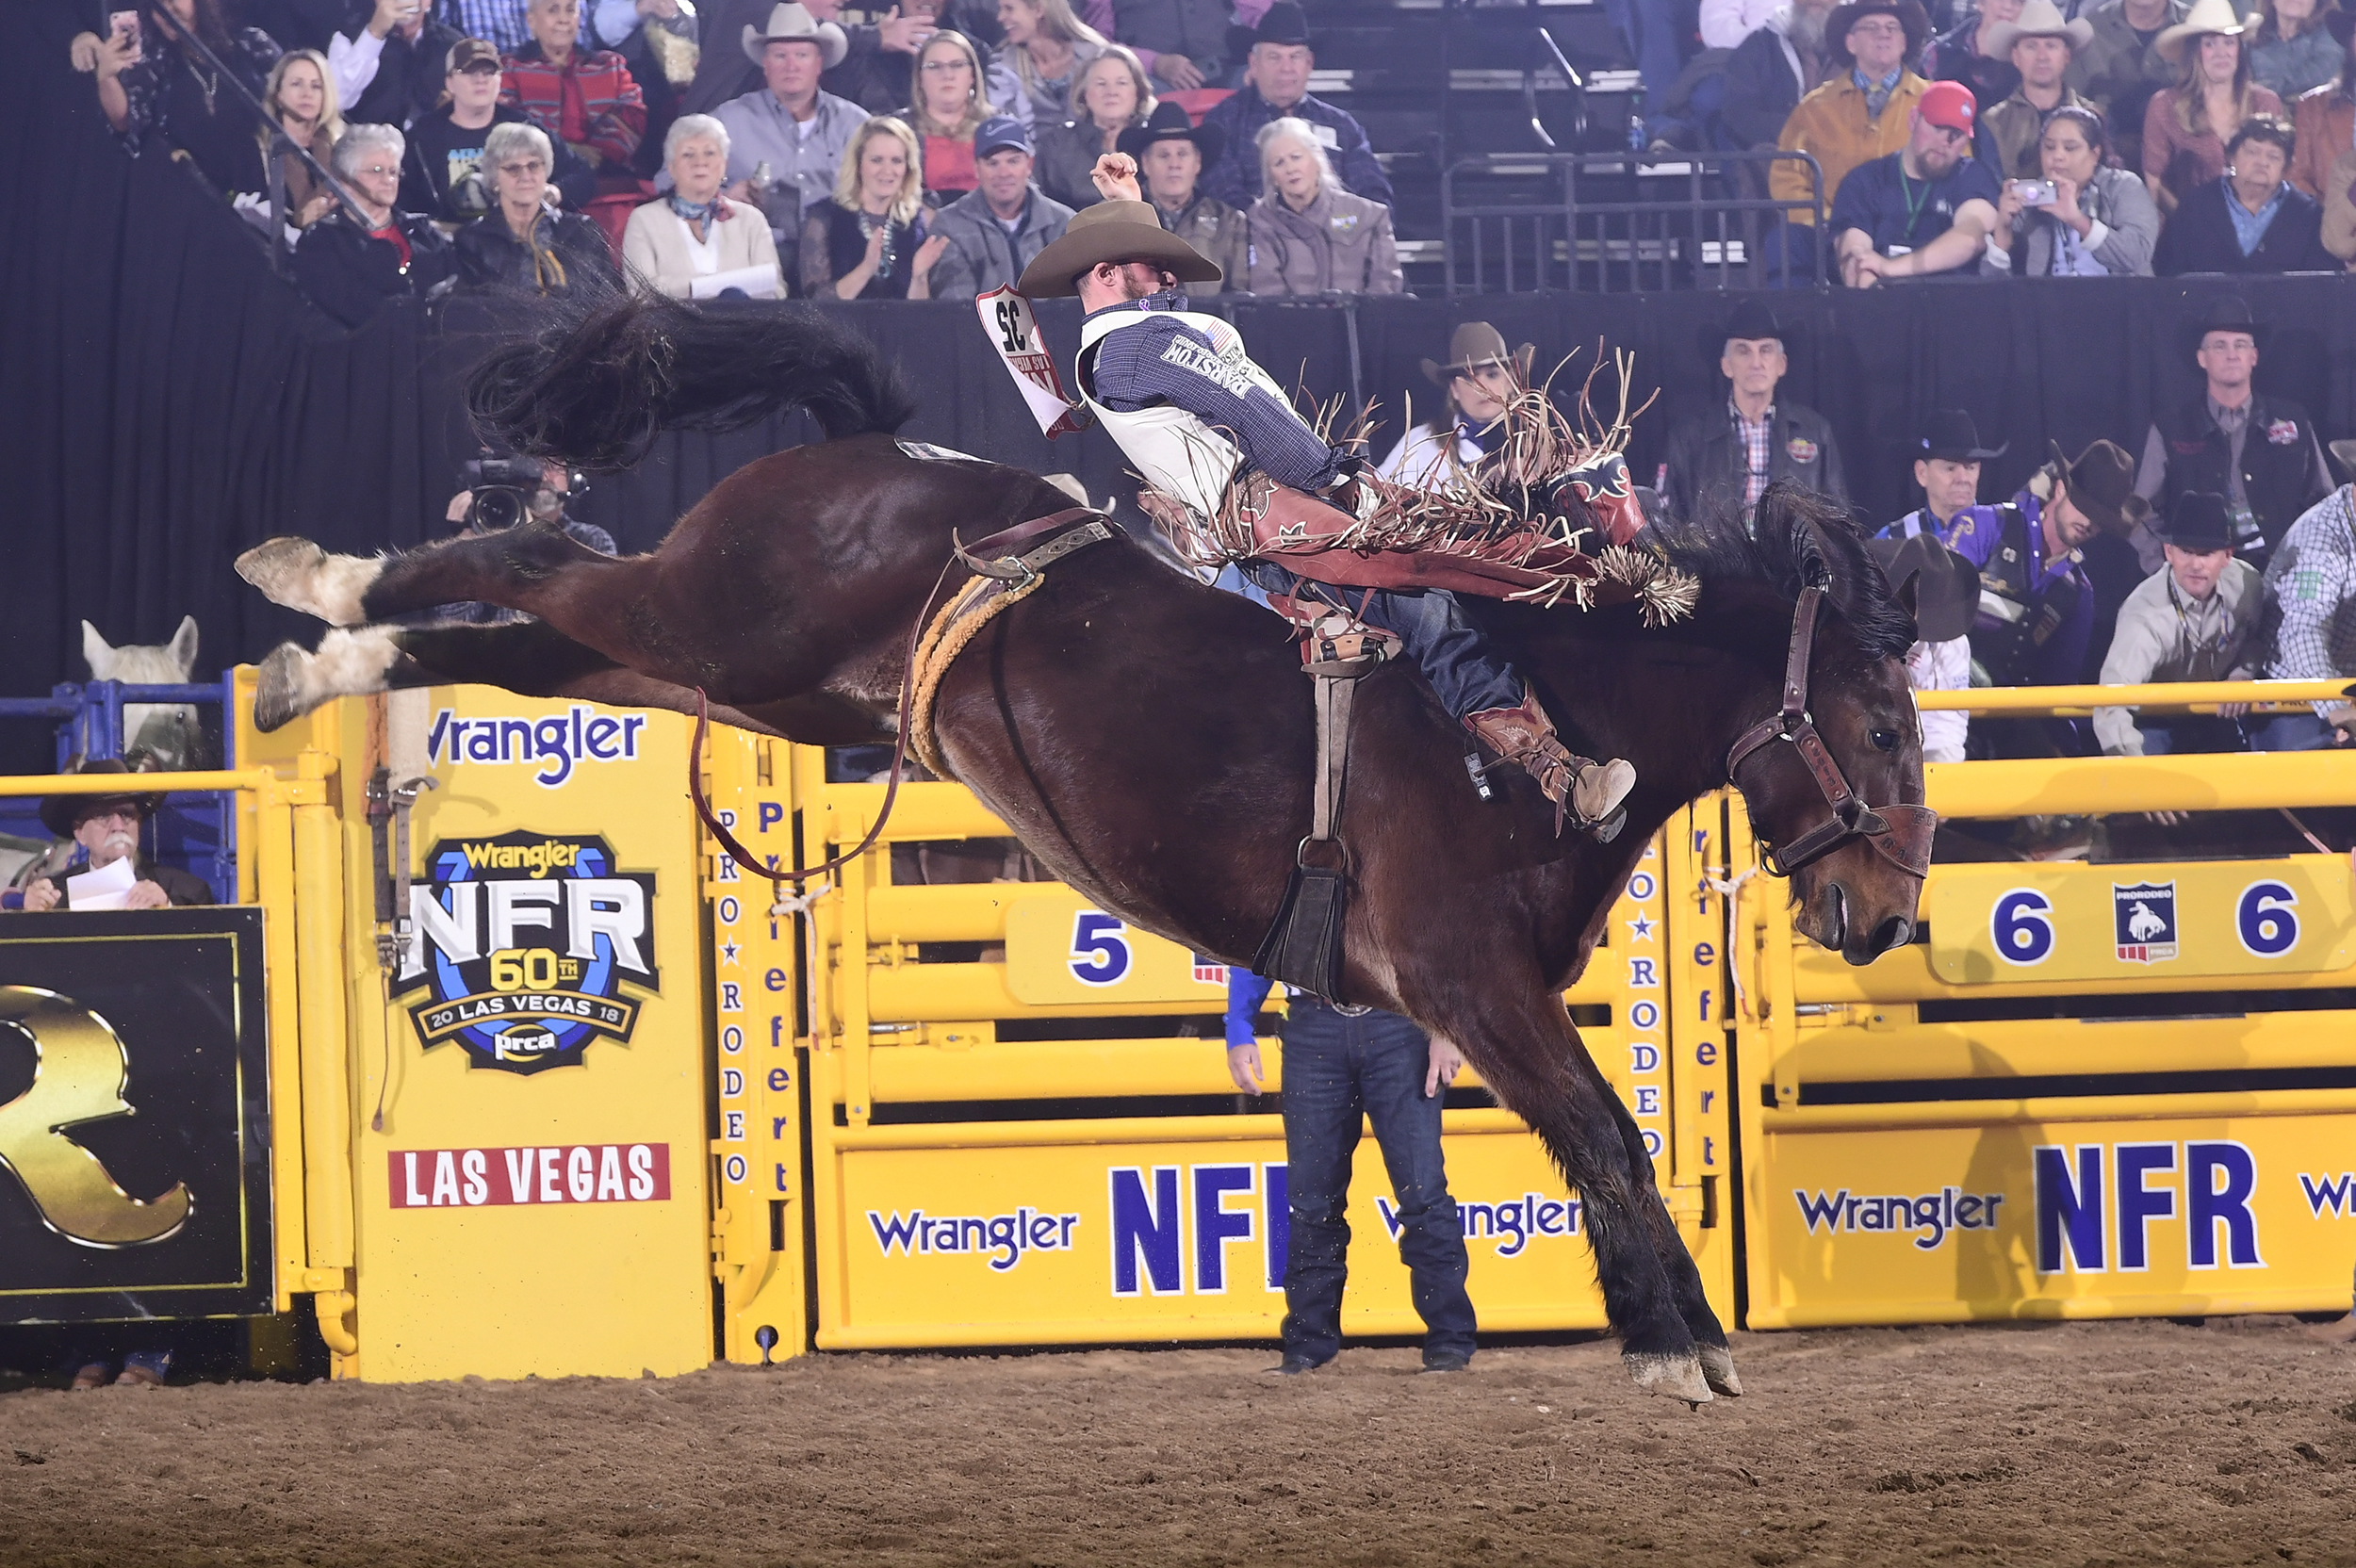 Mason Clements spurs Frontier Rodeo's Full Baggage for 88.5 points Thursday night to finish as runner-up in the eighth round of the National Finals Rodeo. (PRCA PRORODEO PHOTO BY JAMES PHIFER)